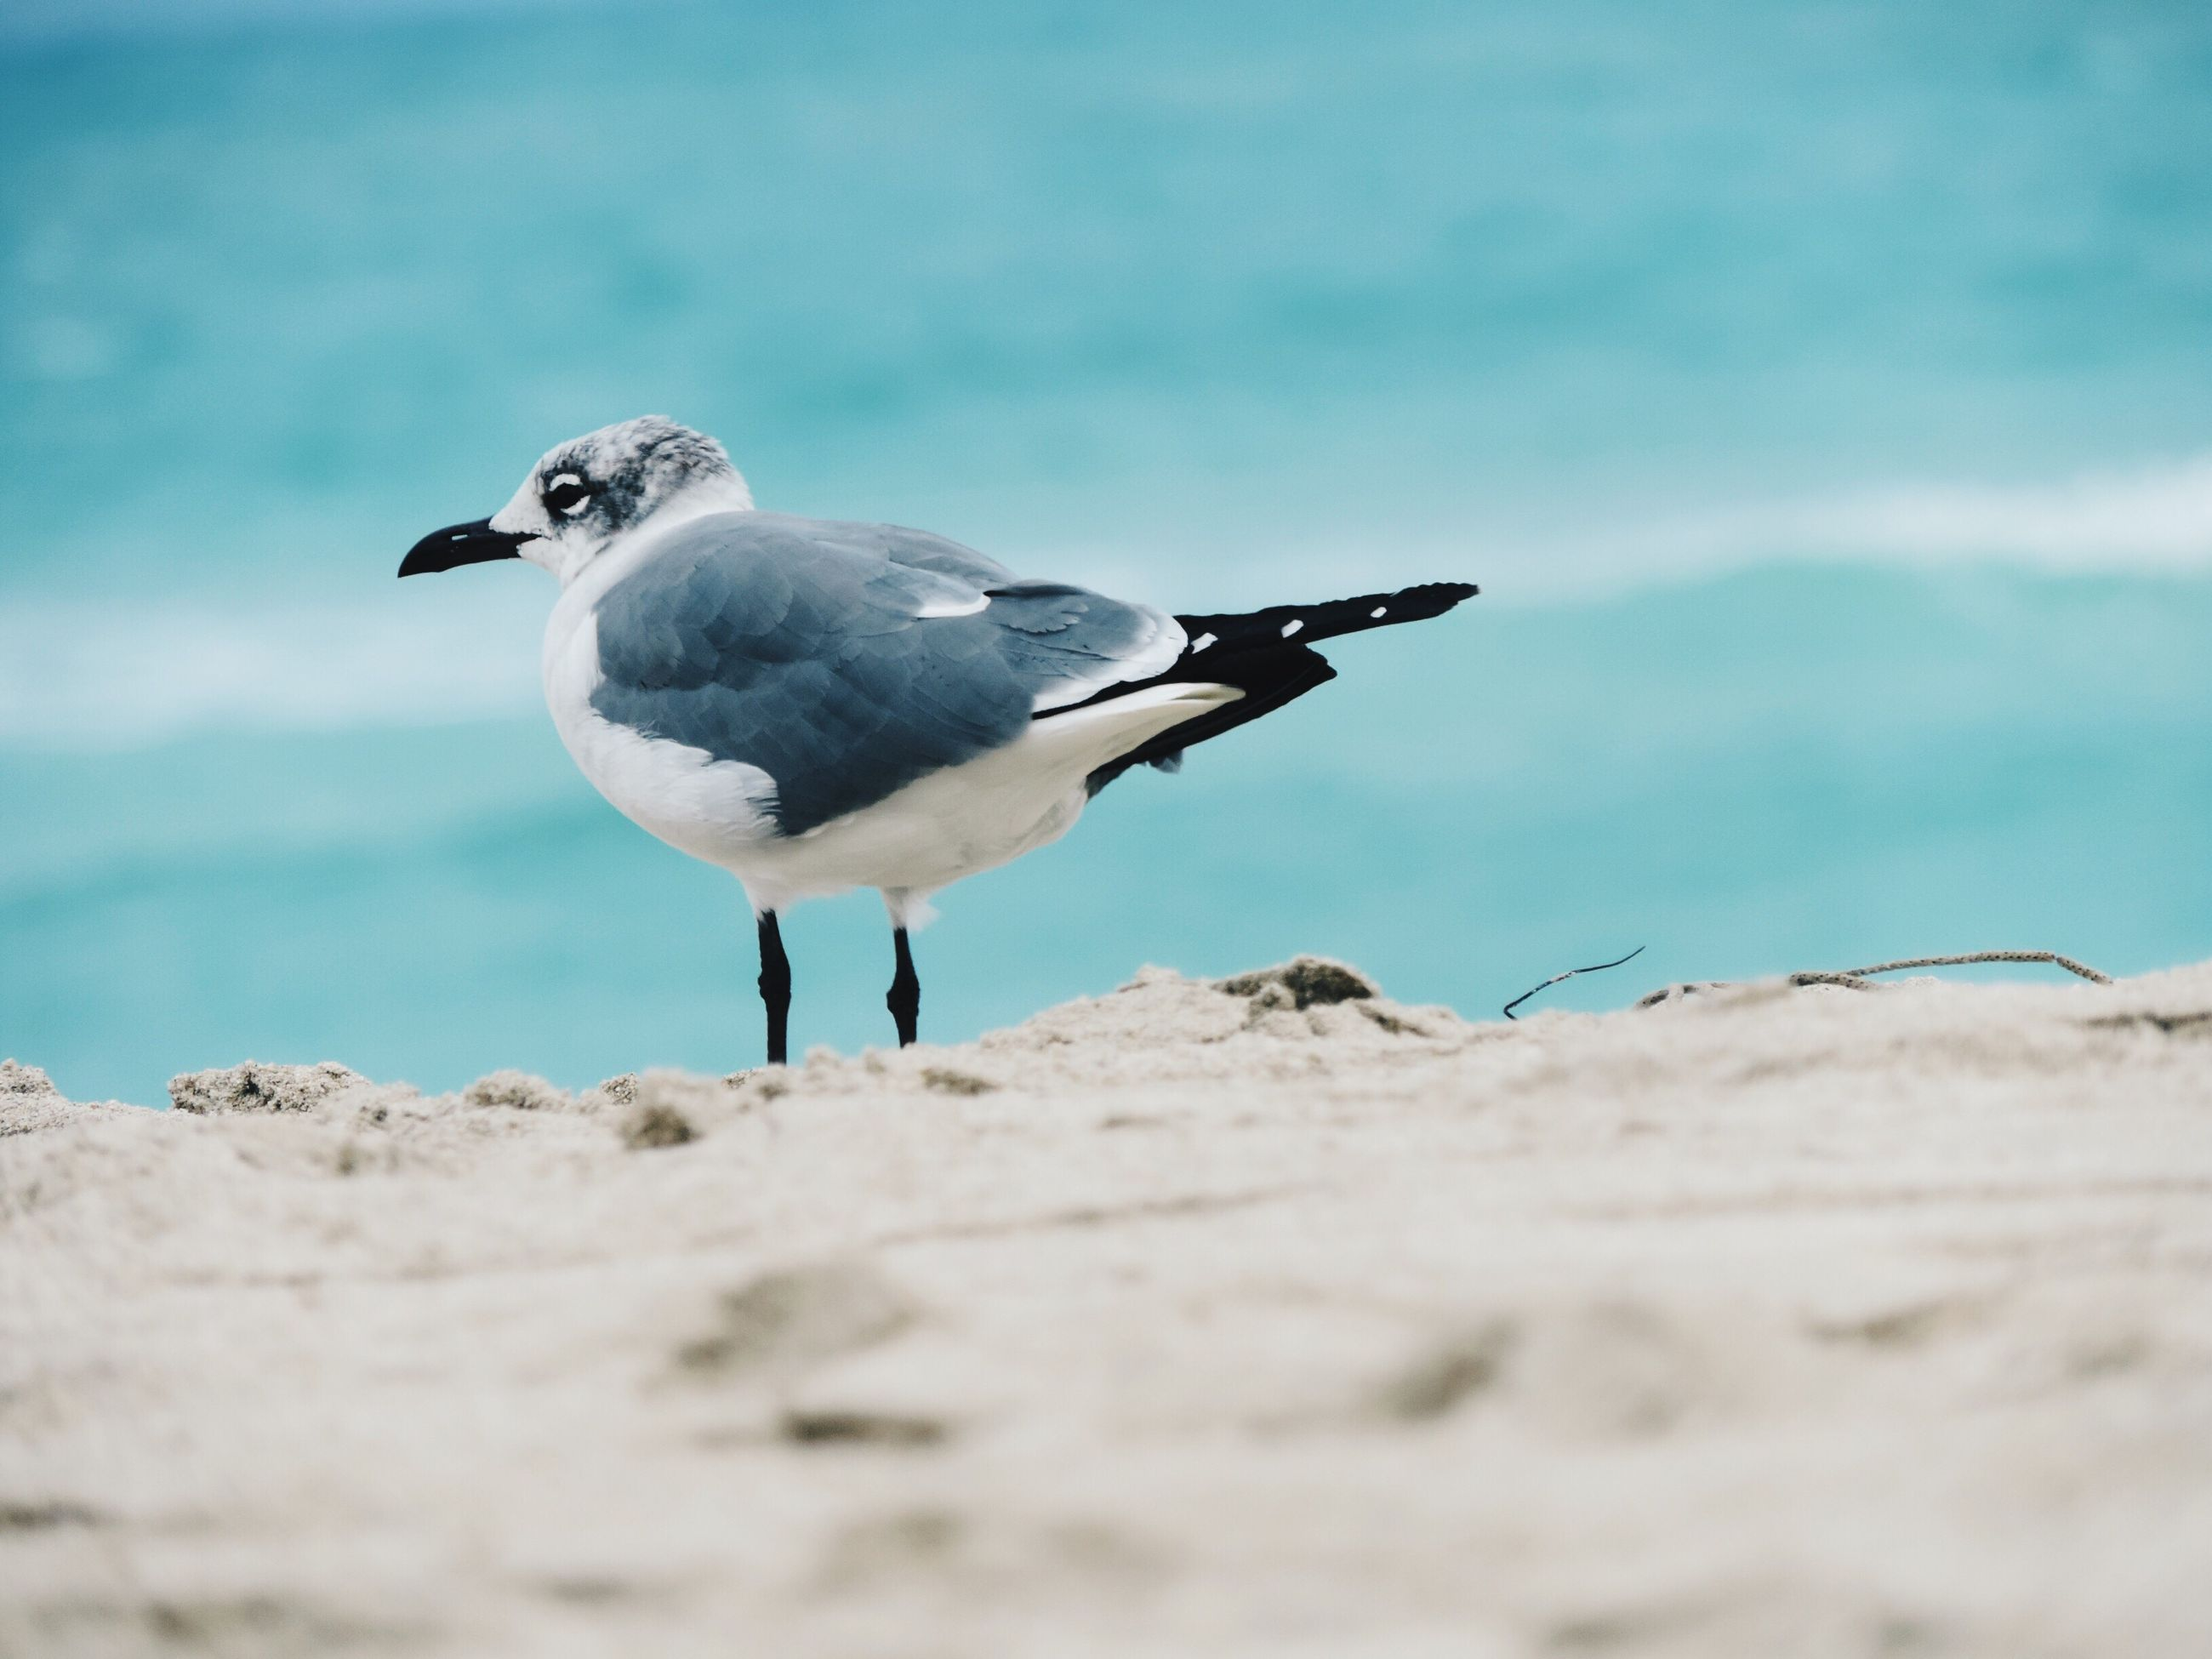 bird, seagull, animal themes, animals in the wild, beach, wildlife, one animal, full length, sand, sky, nature, focus on foreground, shore, sea, perching, day, blue, selective focus, outdoors, spread wings